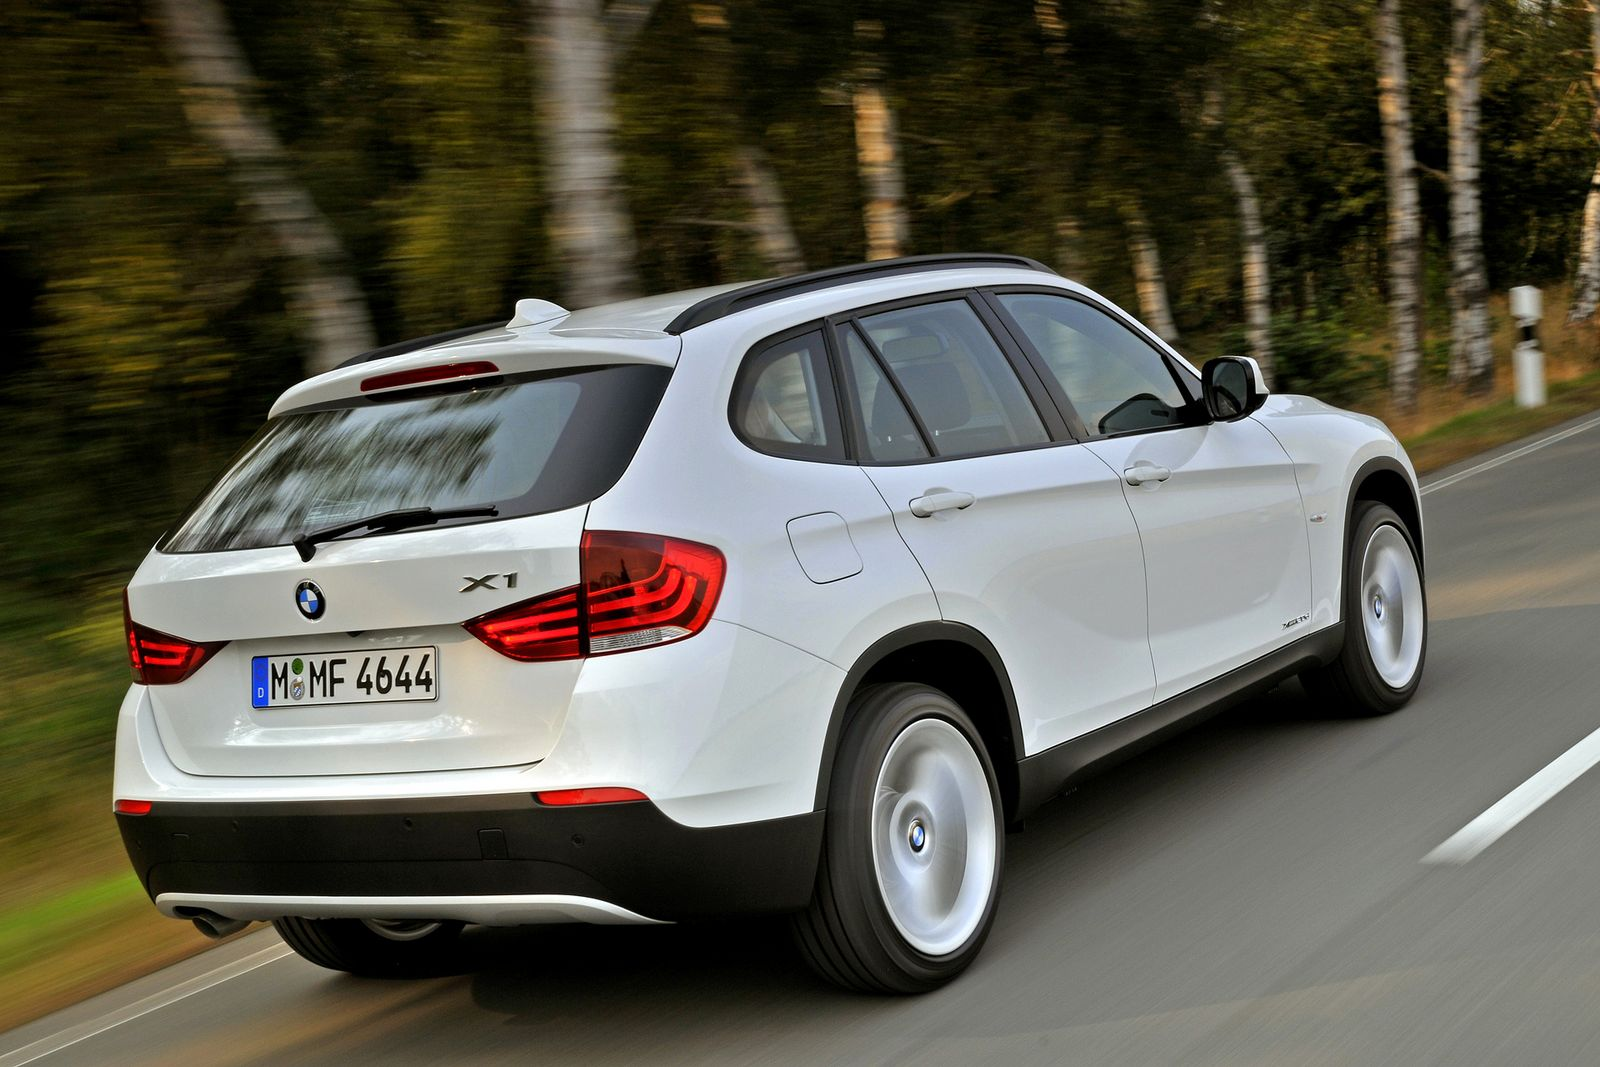 bmw x1 car review specification images. Black Bedroom Furniture Sets. Home Design Ideas